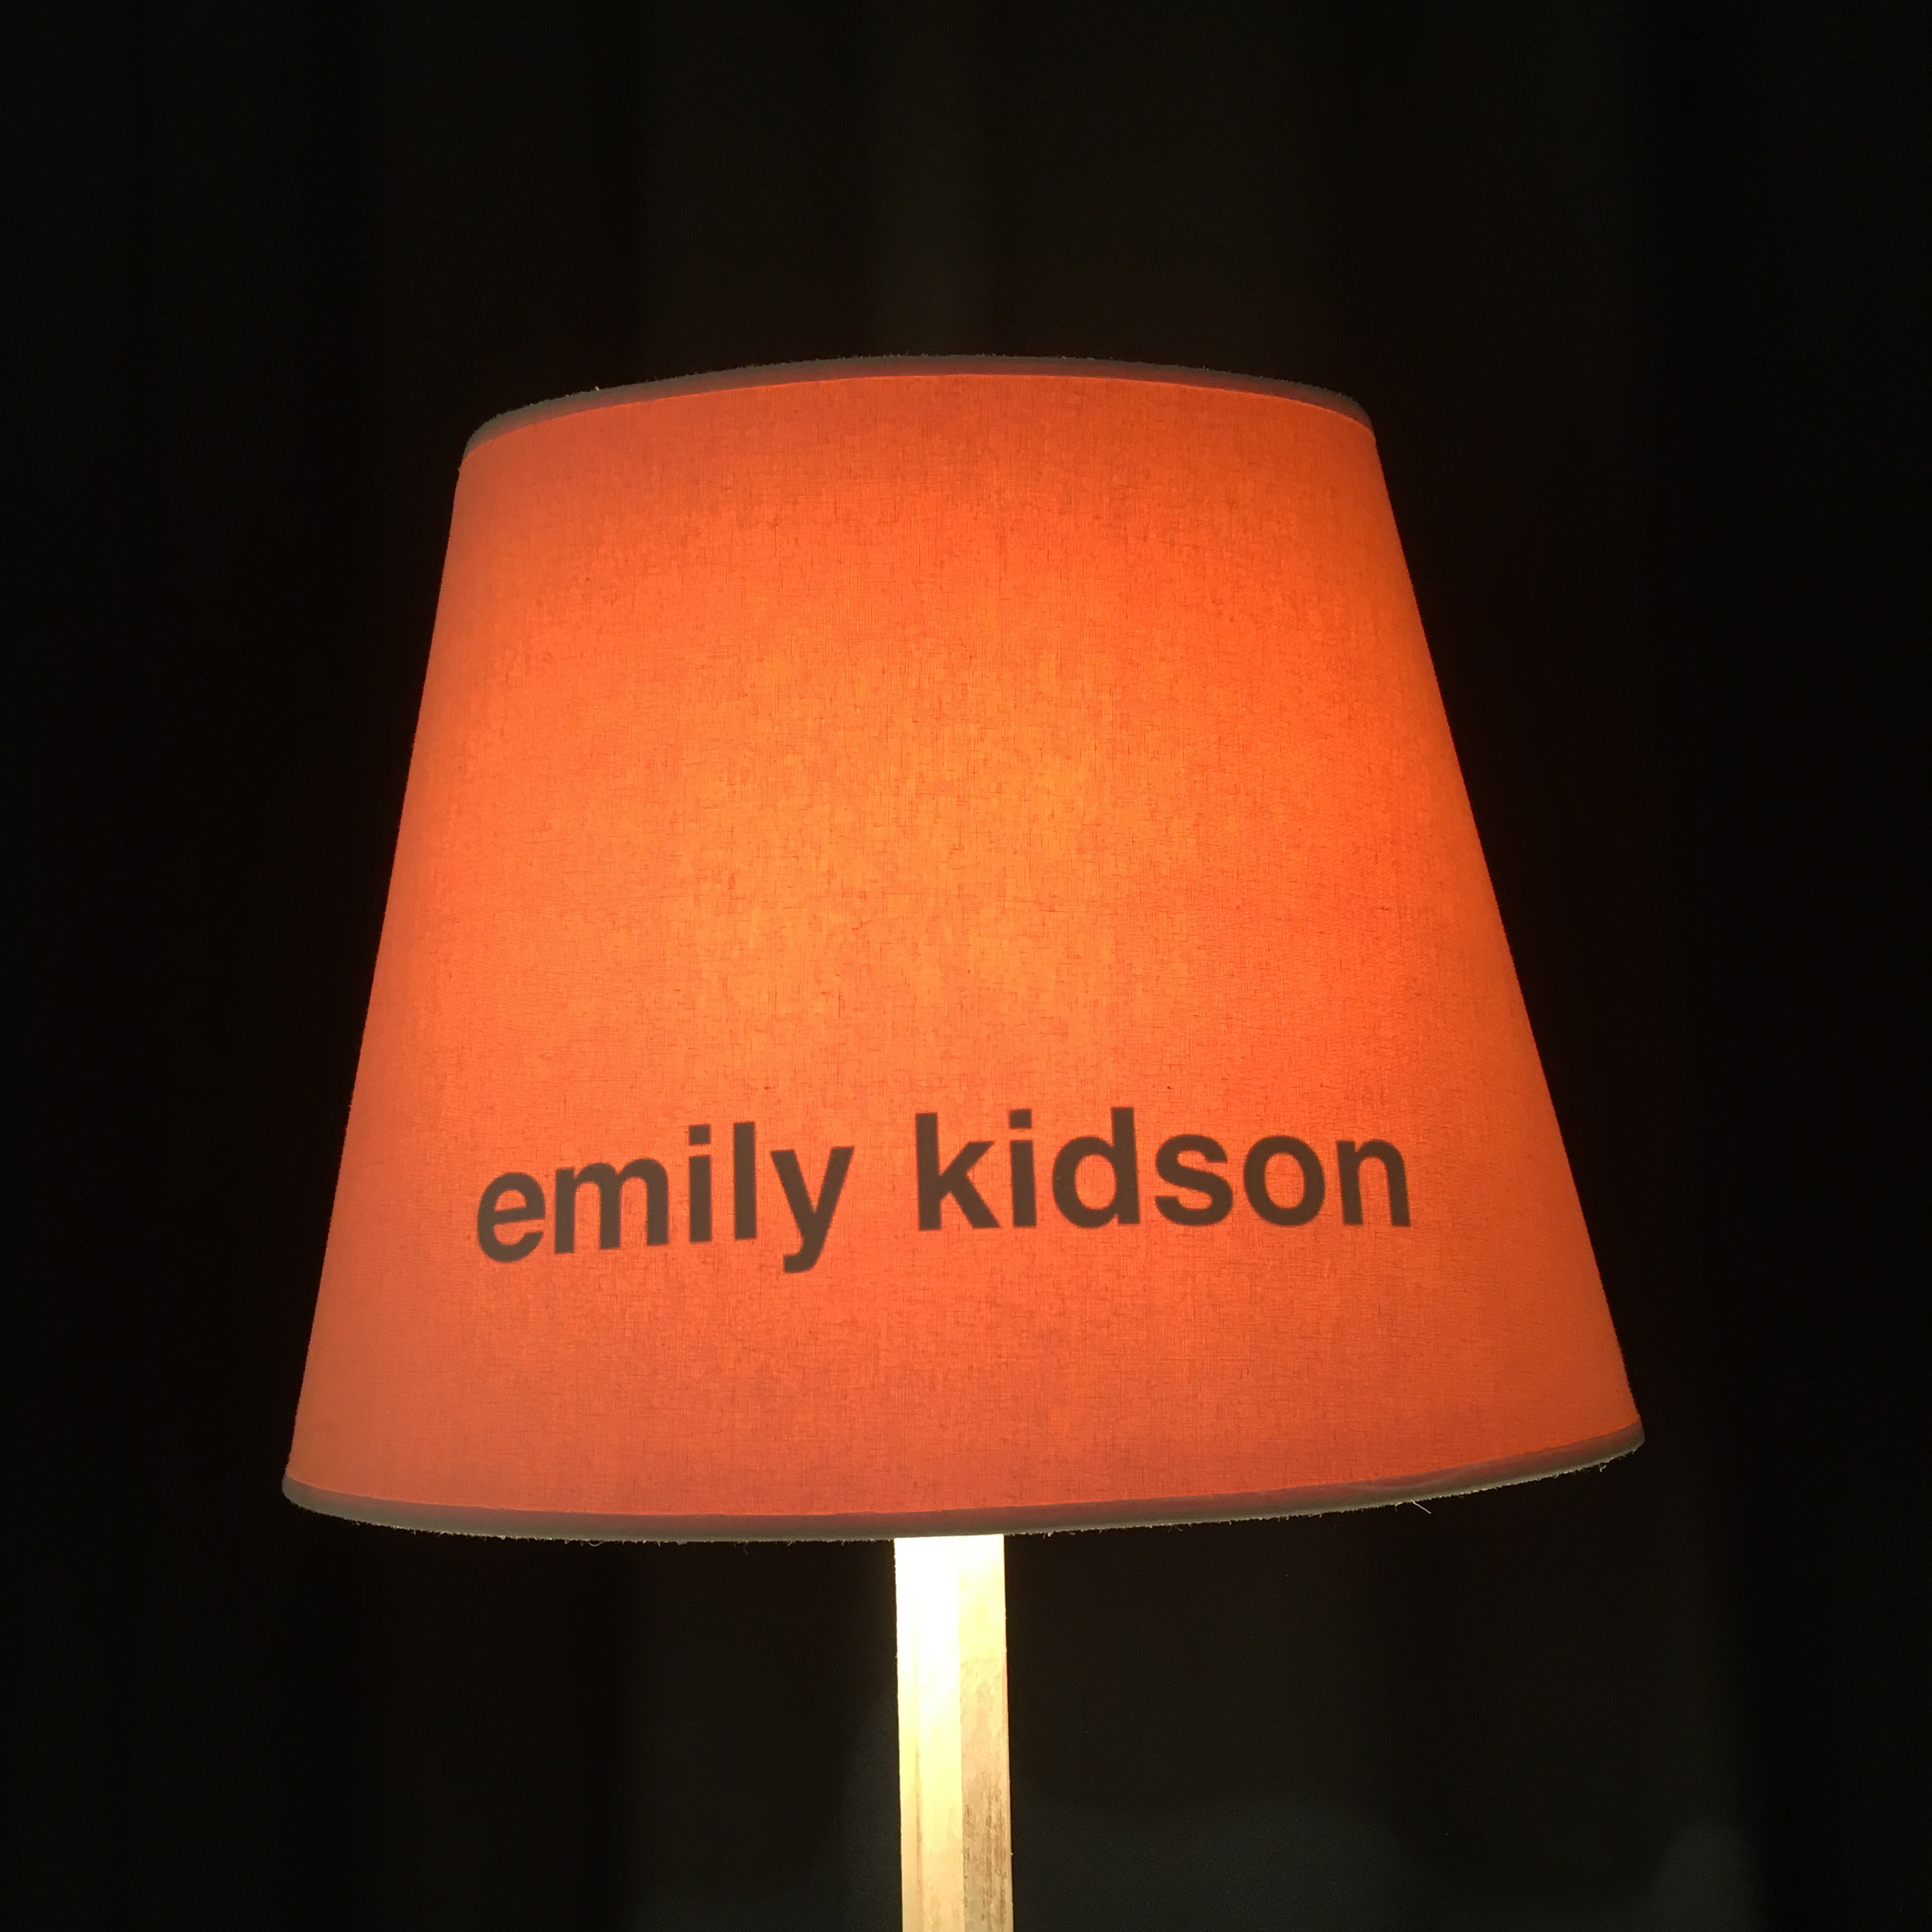 That's me! Every exhibitor gets a lampshade with their name on for the duration of the show.